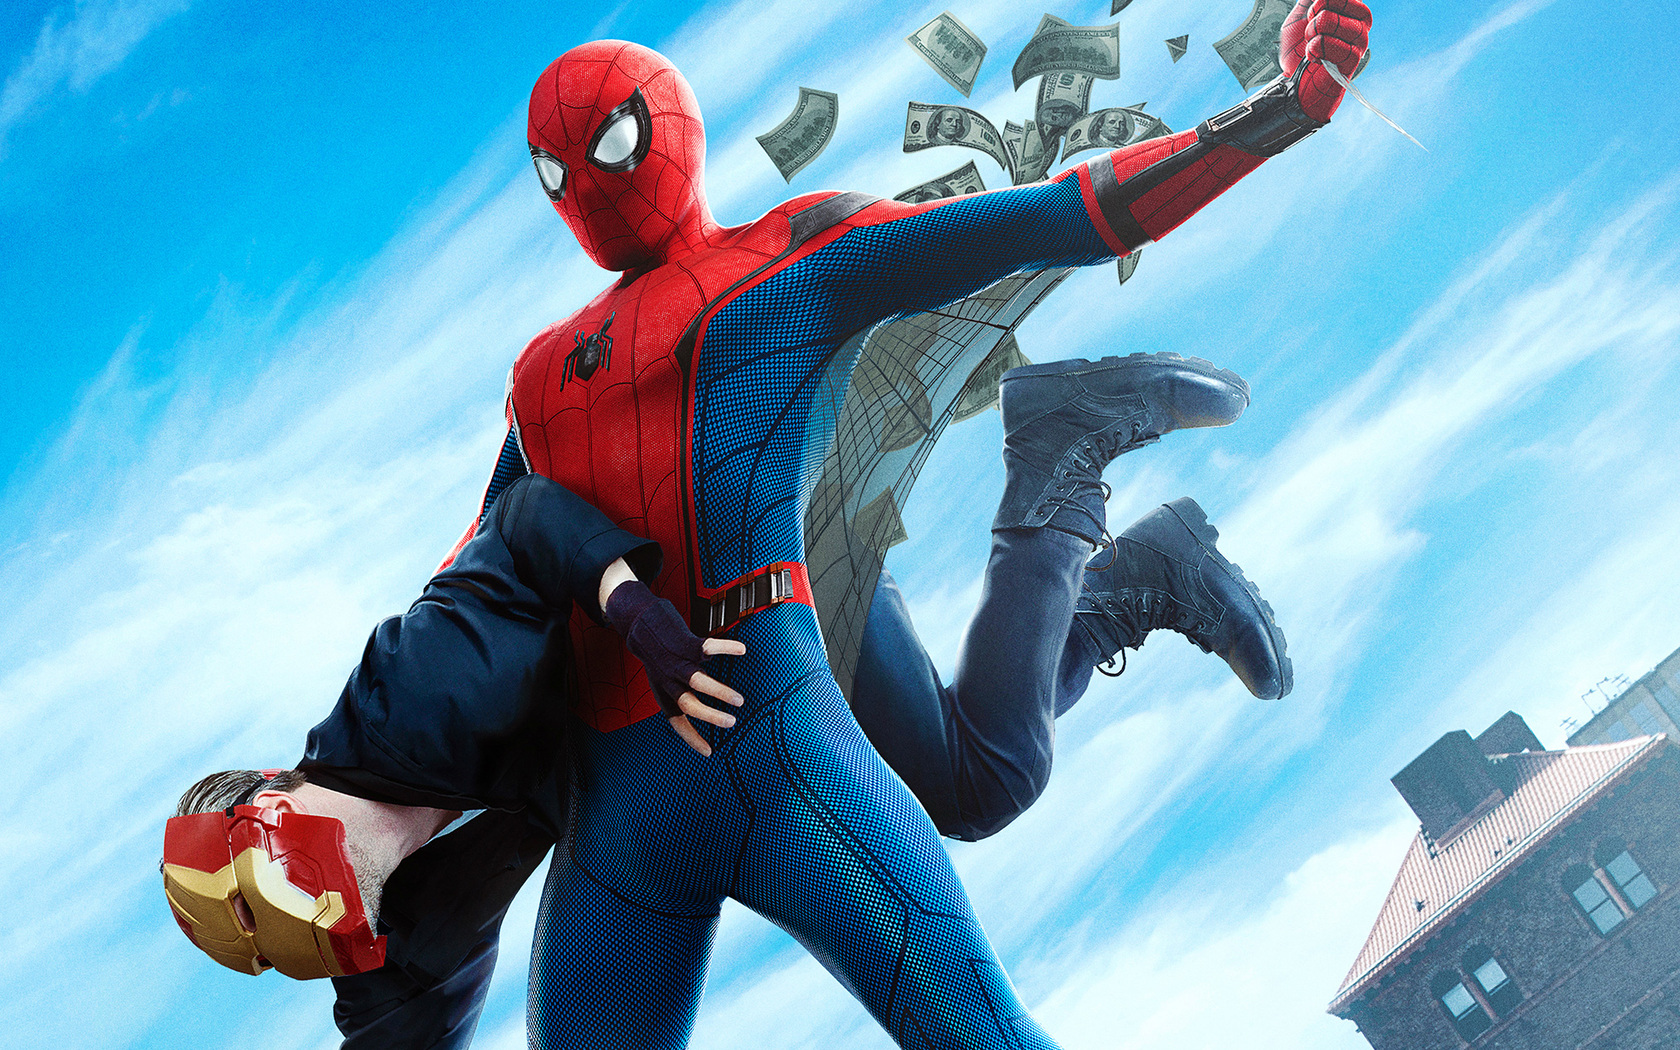 spiderman-homecoming-final-poster-0e.jpg